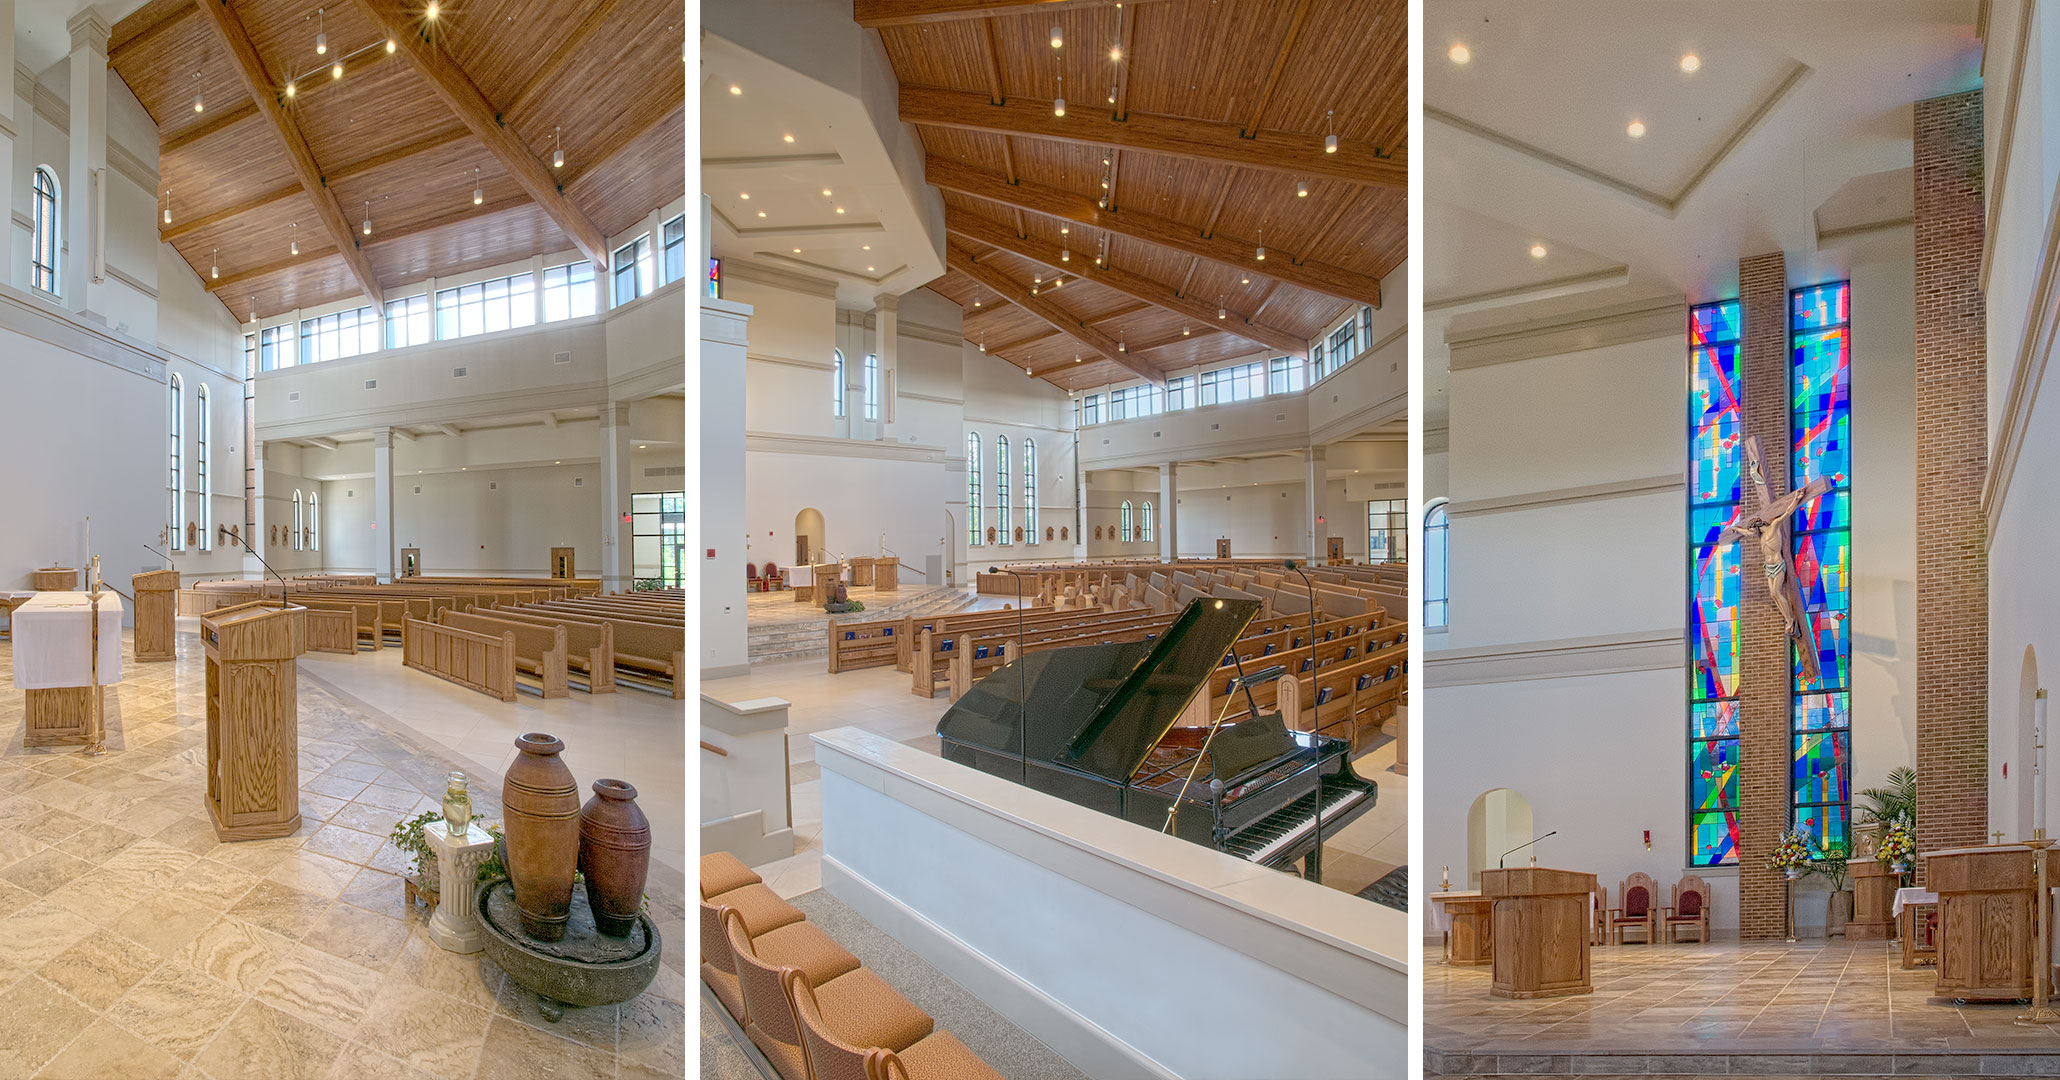 Boudreaux was hired by St. Therese in Mooresville, NC to design the interiors of the sanctuary.